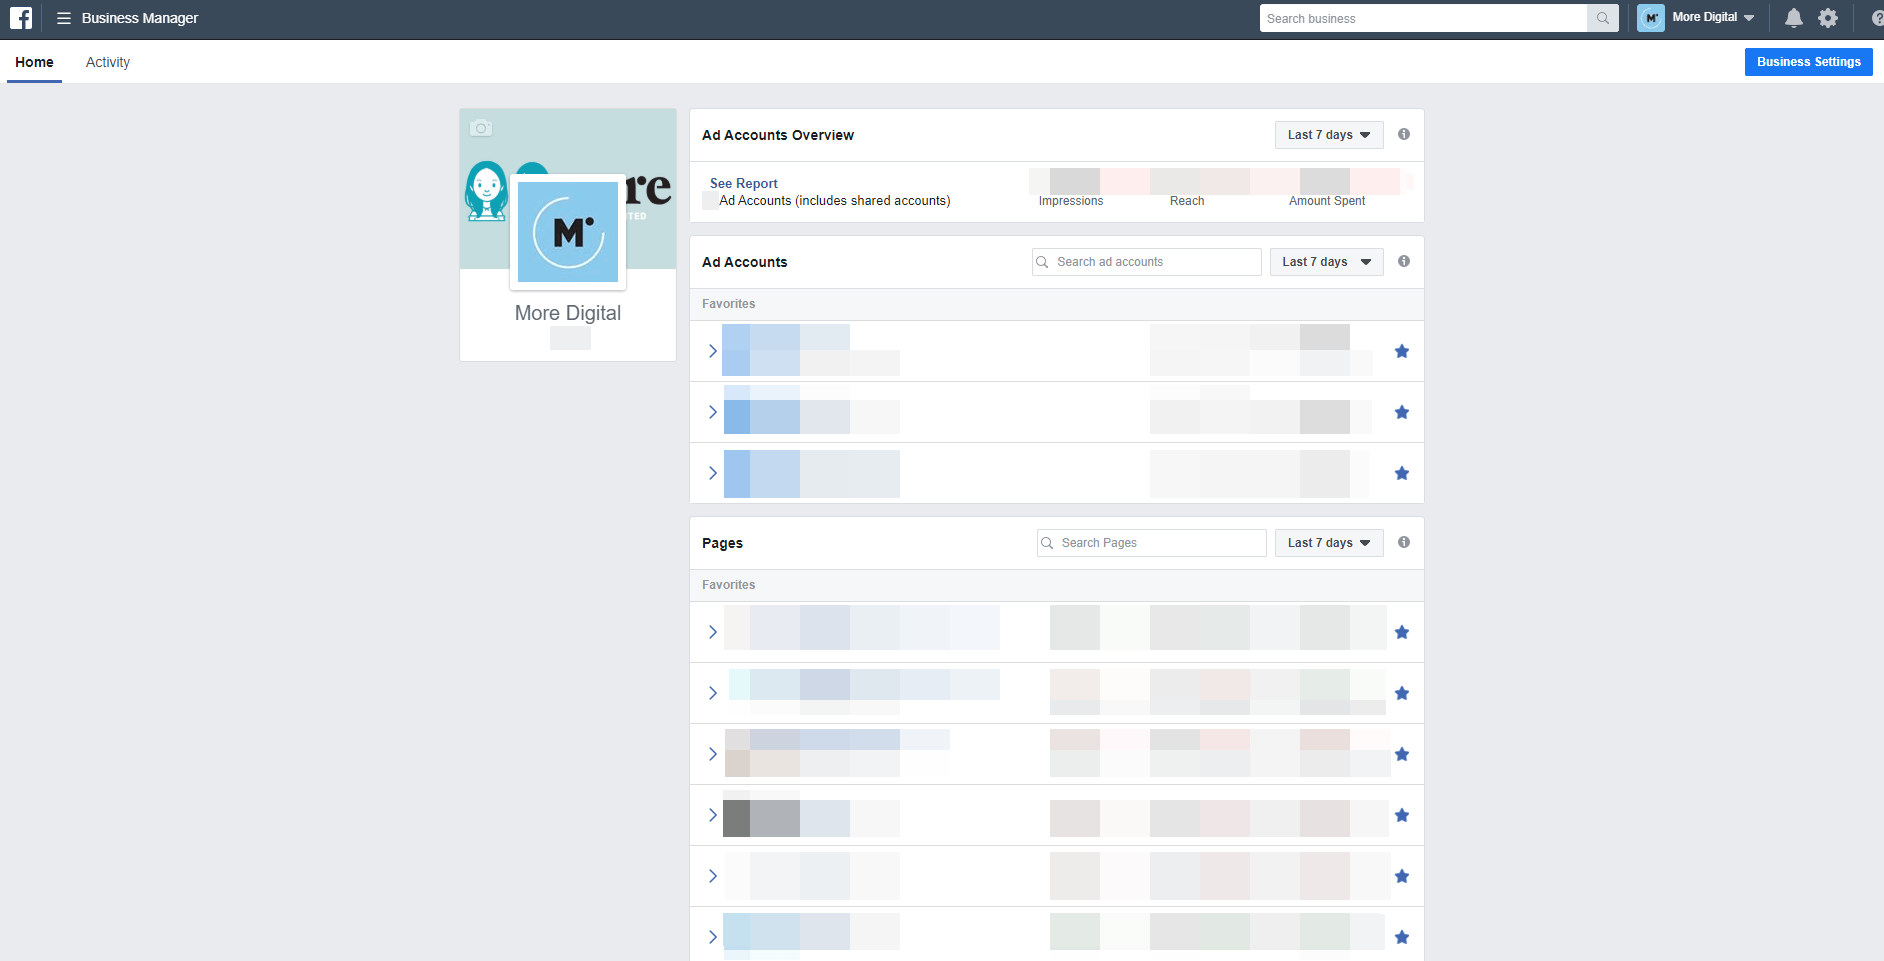 Facebook Business Manager Home Page